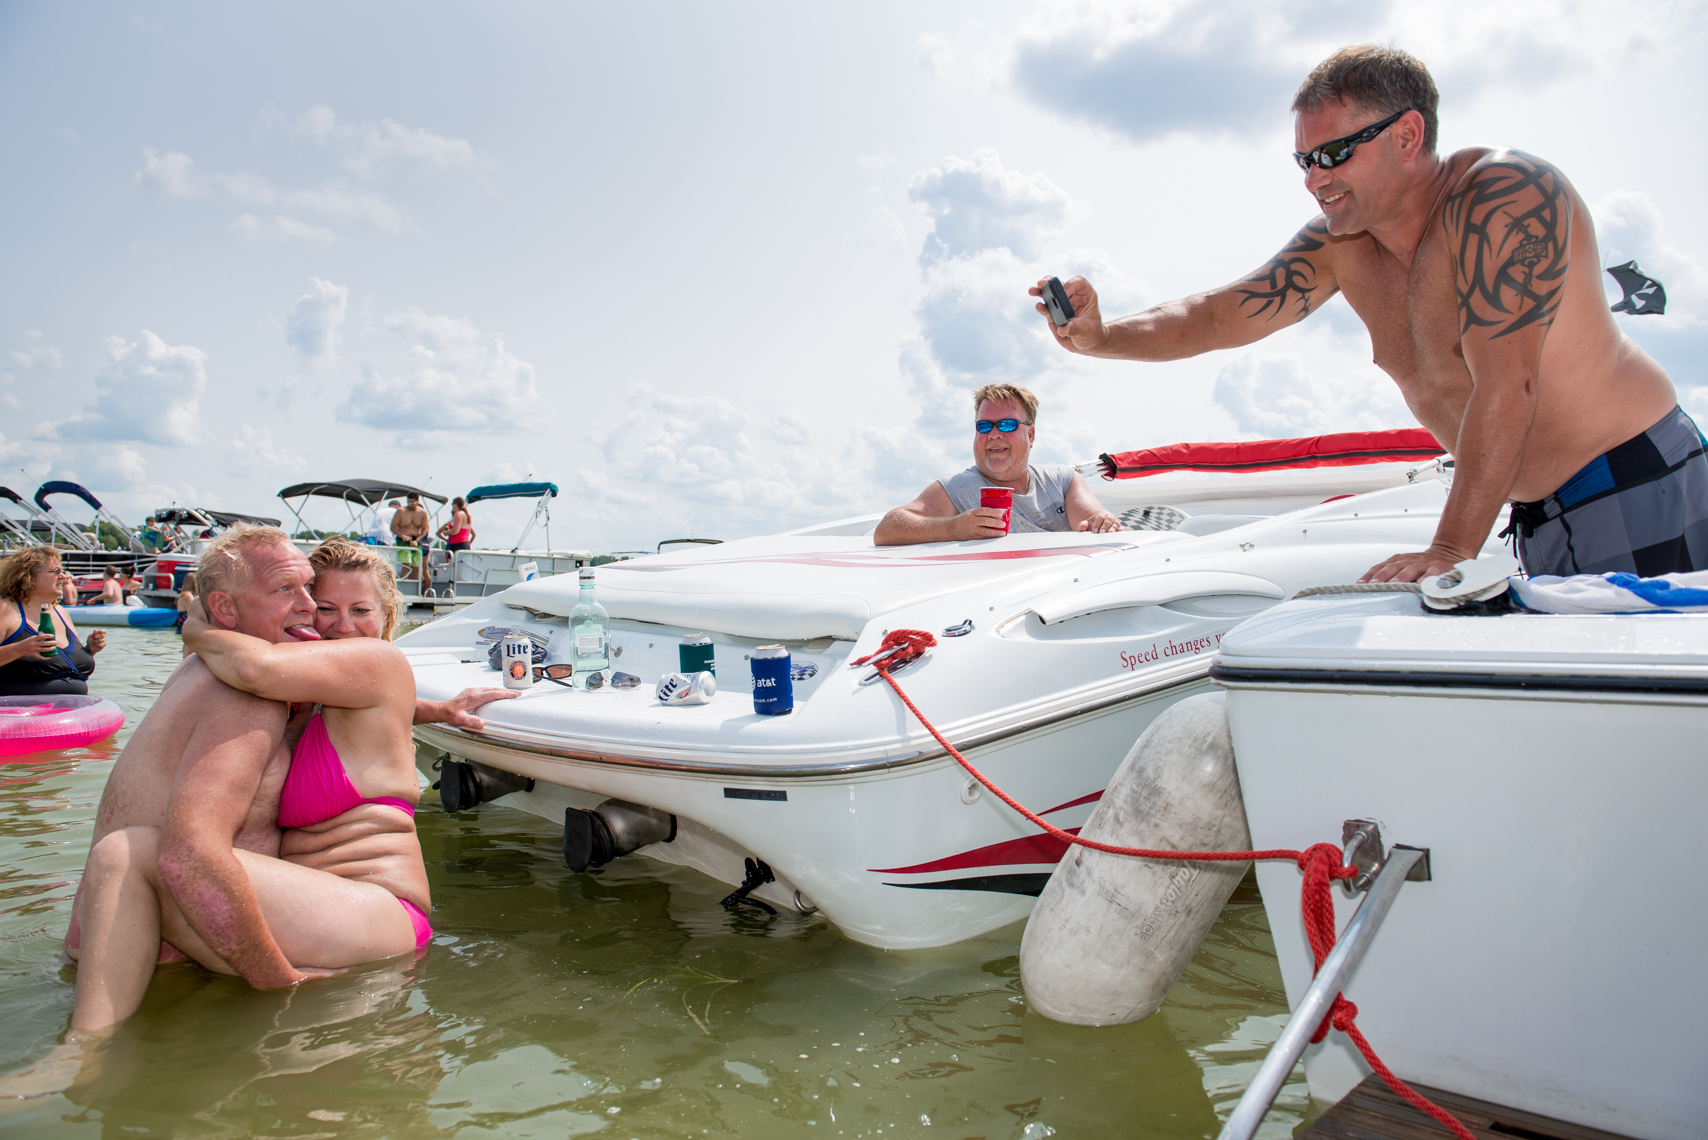 Reportage, couple posing for a photo, real people, lake party, summer, beverage, swimming, swim, suit, bathing, confident, summer fun, liquor, travel, Madison, Chicago, Nashville advertising, beverage, lifestyle